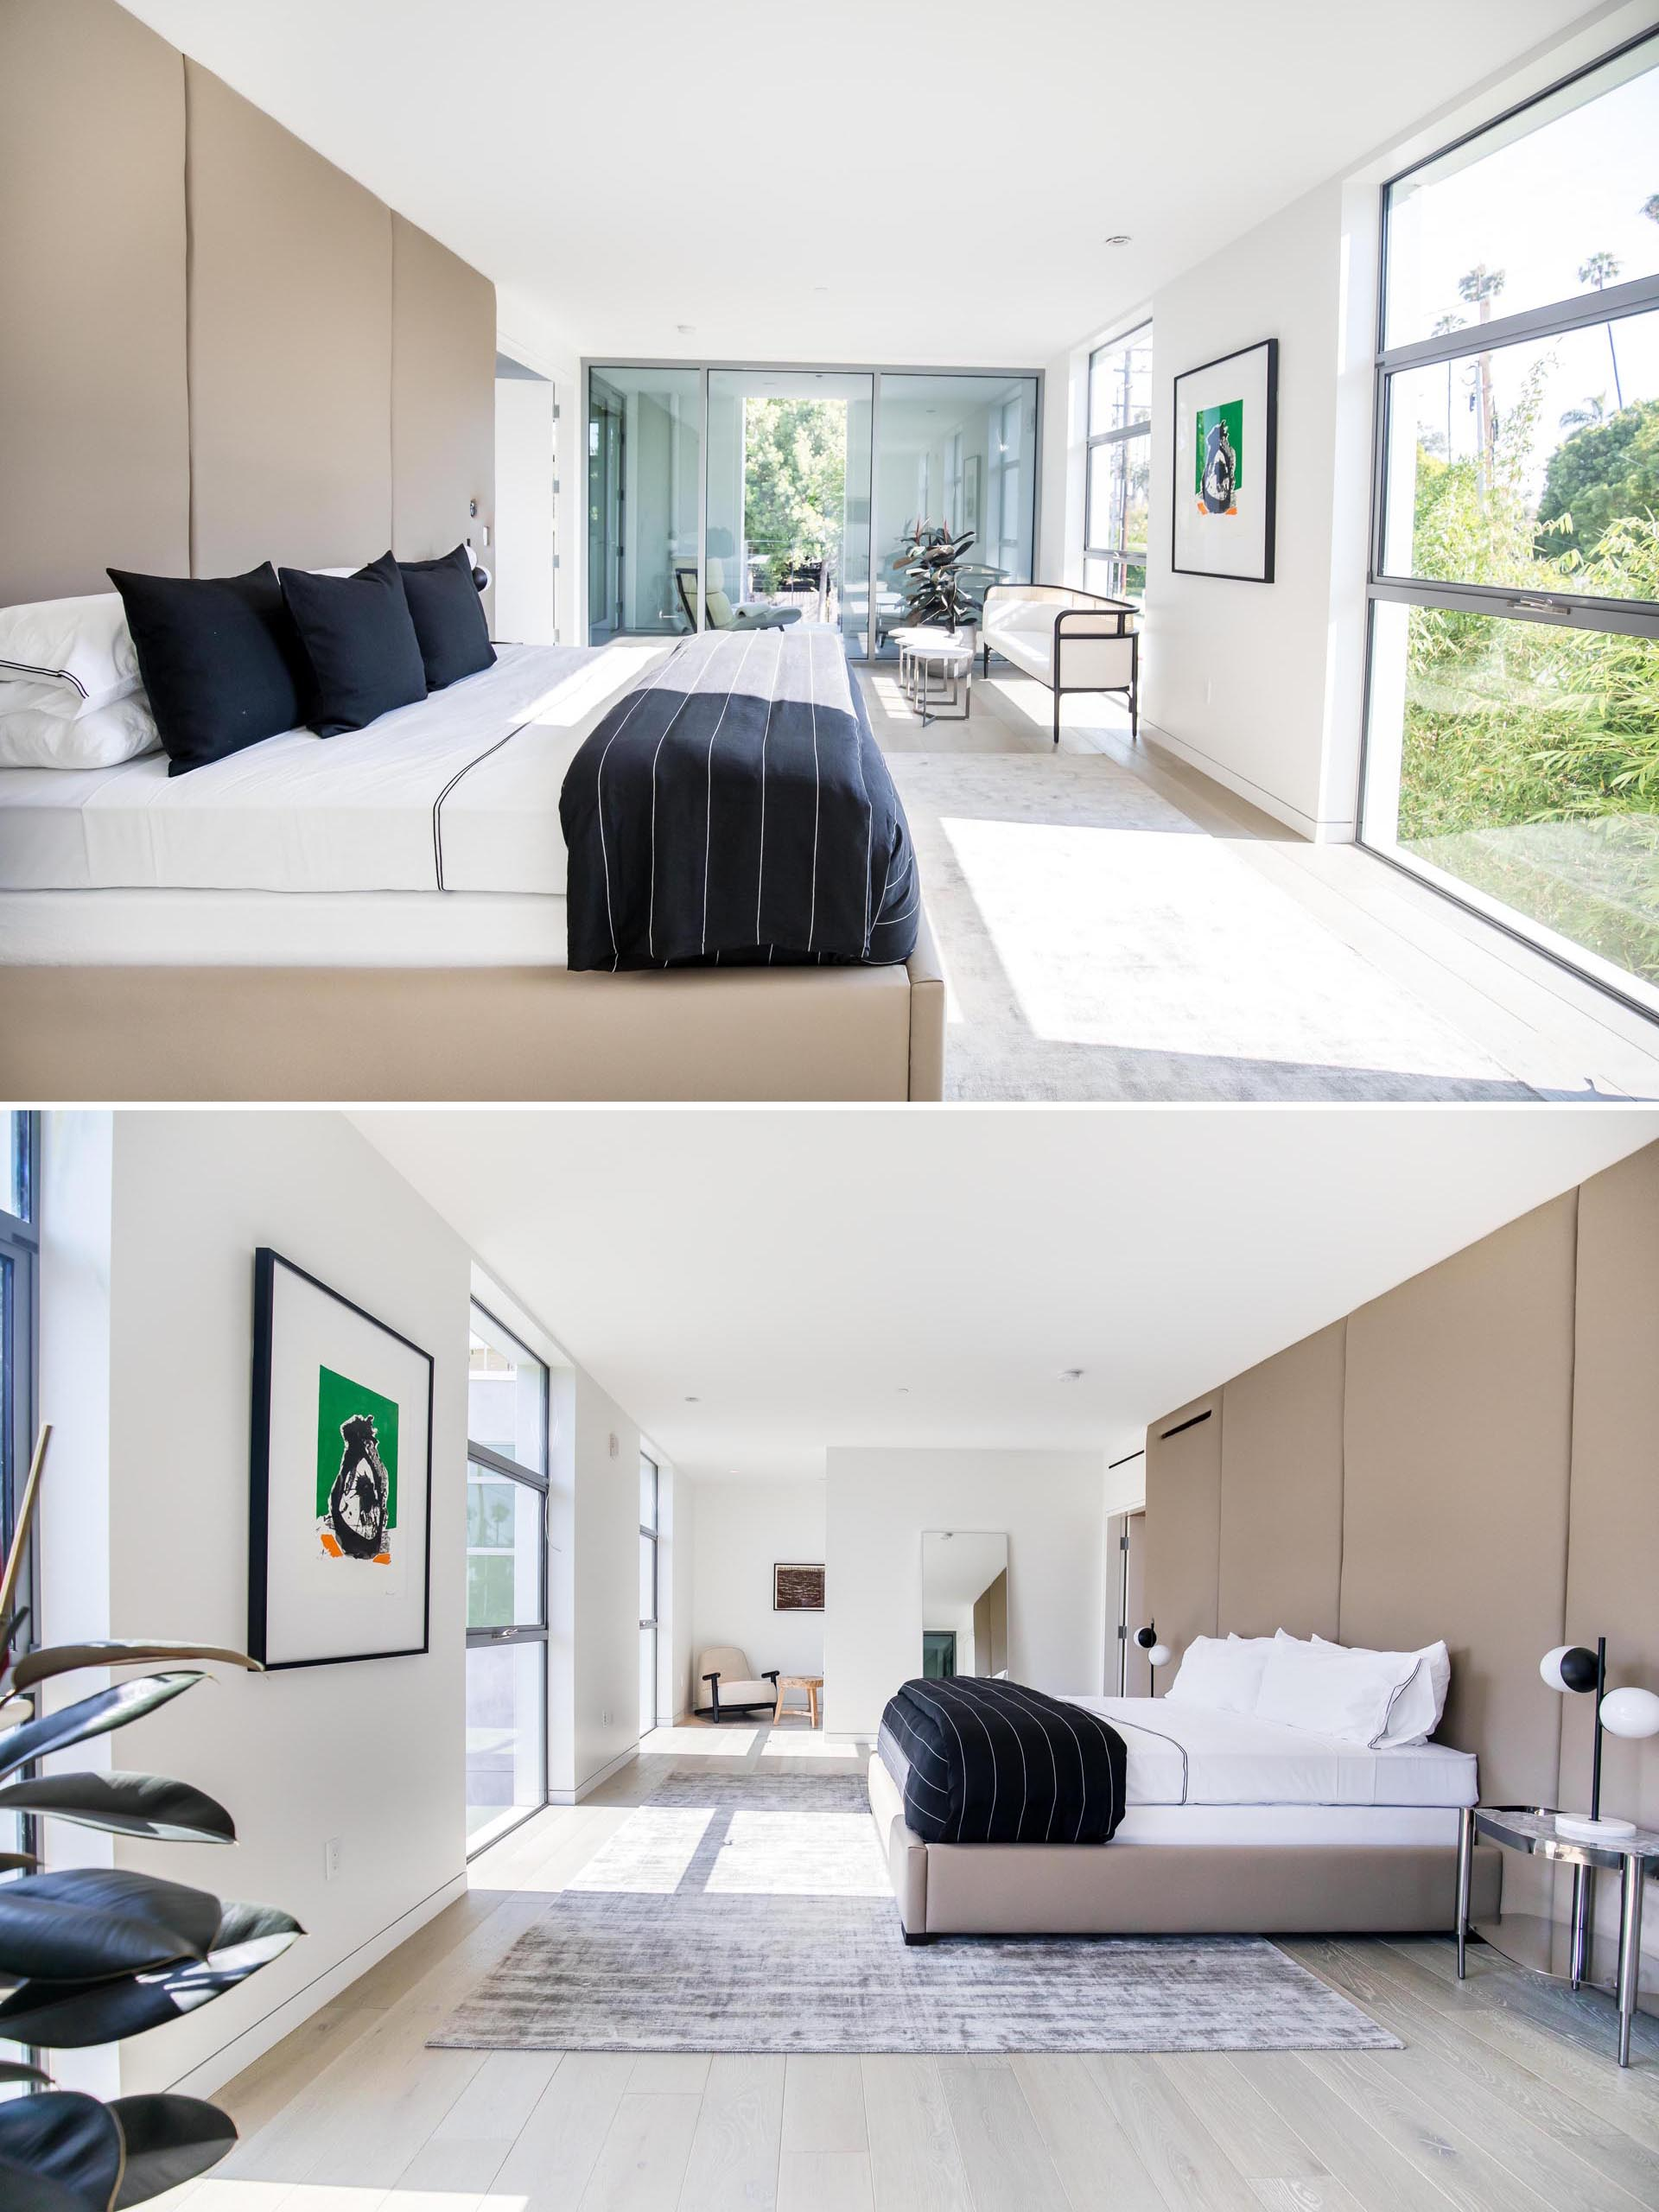 A modern master bedroom with minimal furnishings.